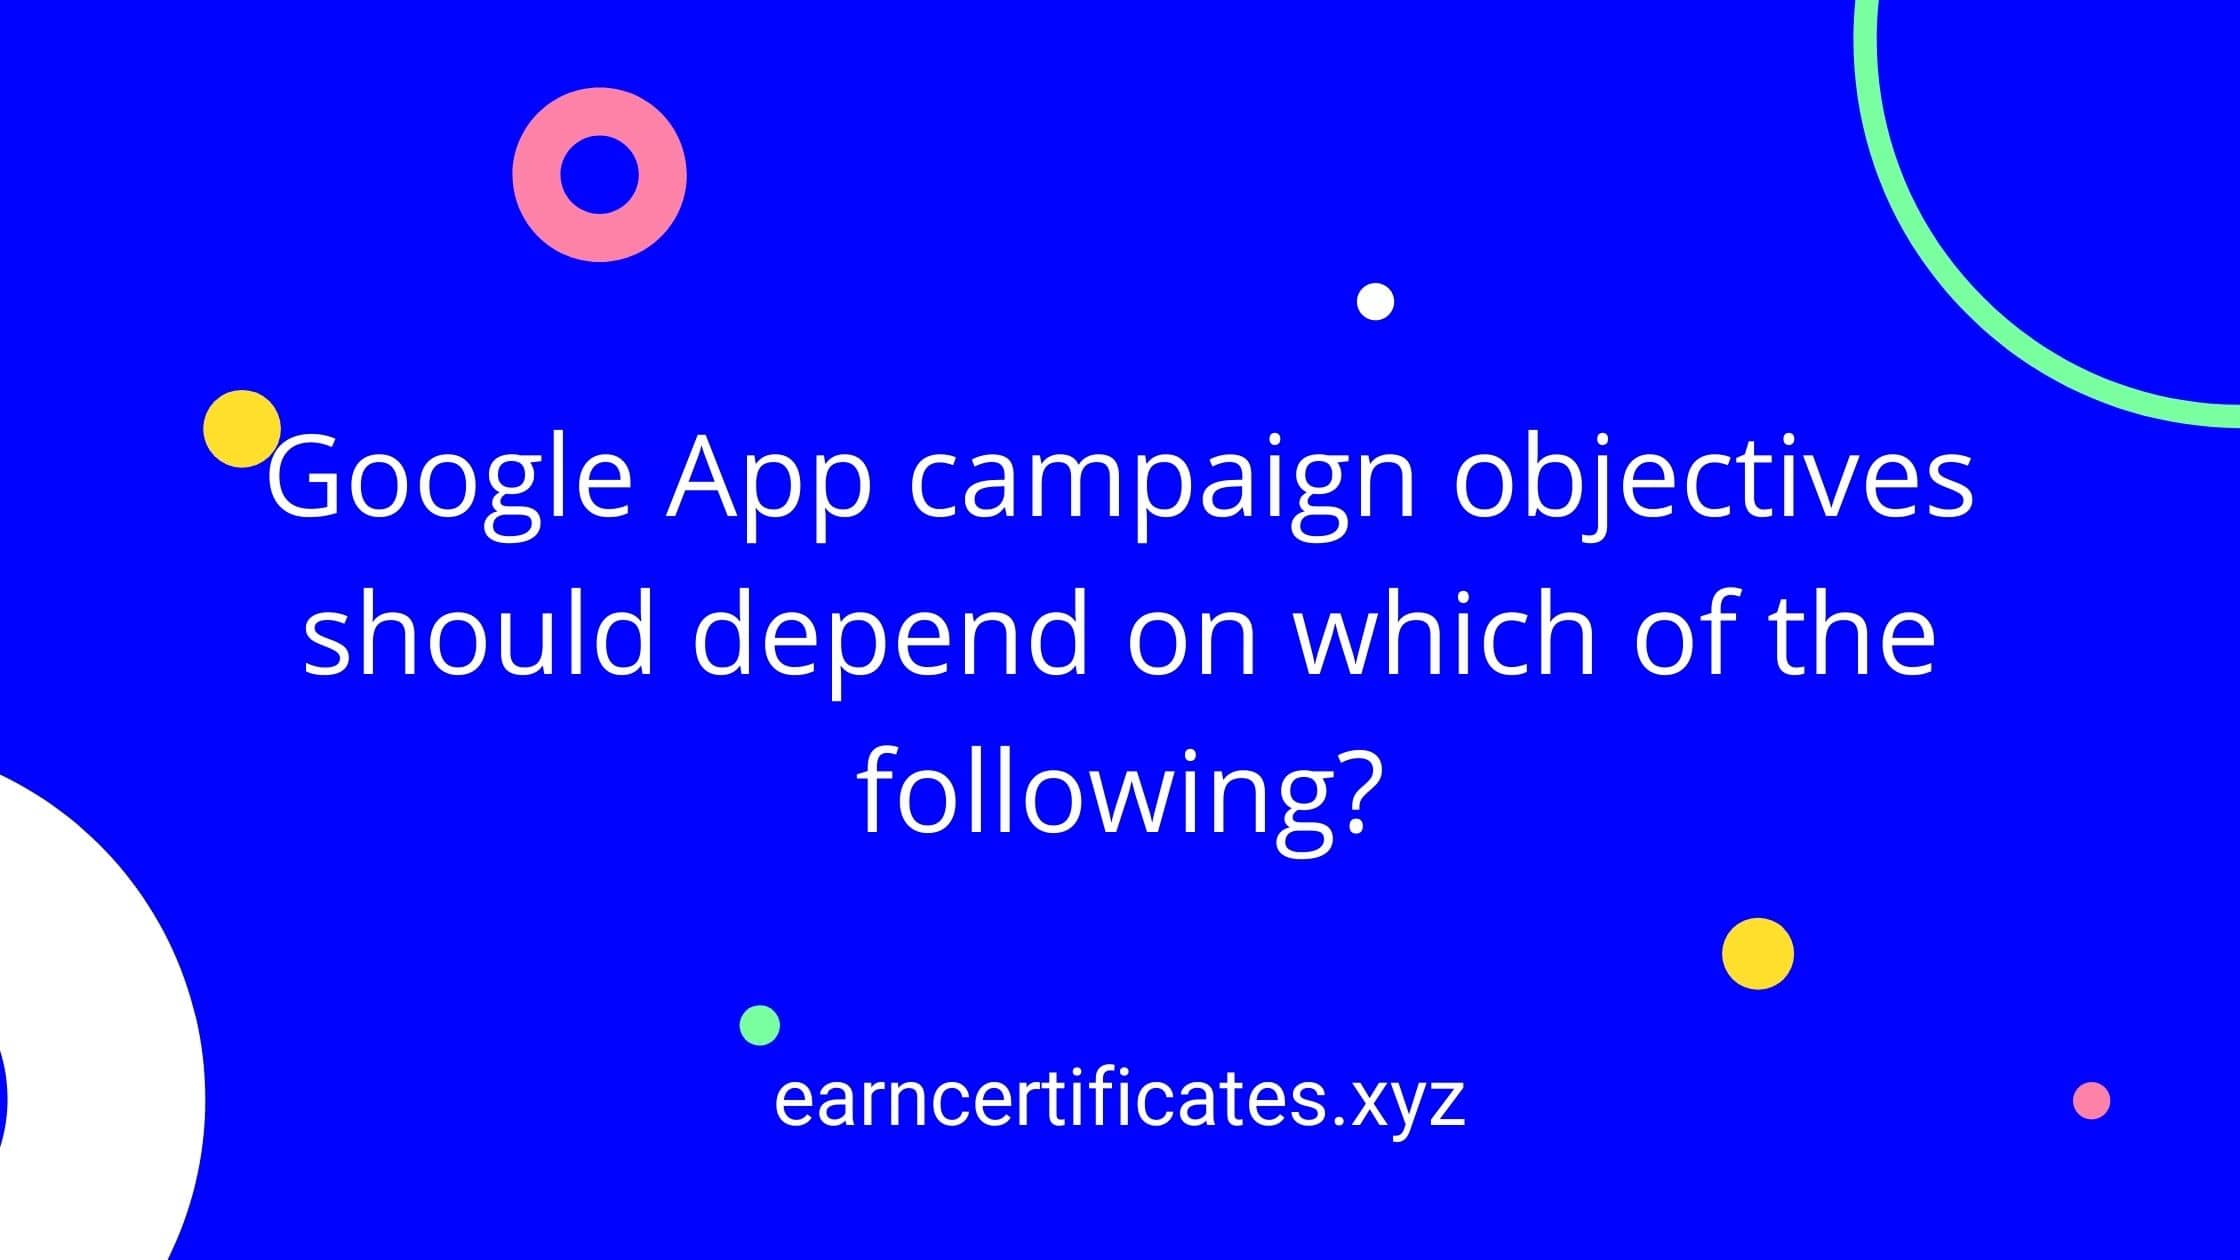 Google App campaign objectives should depend on which of the following?